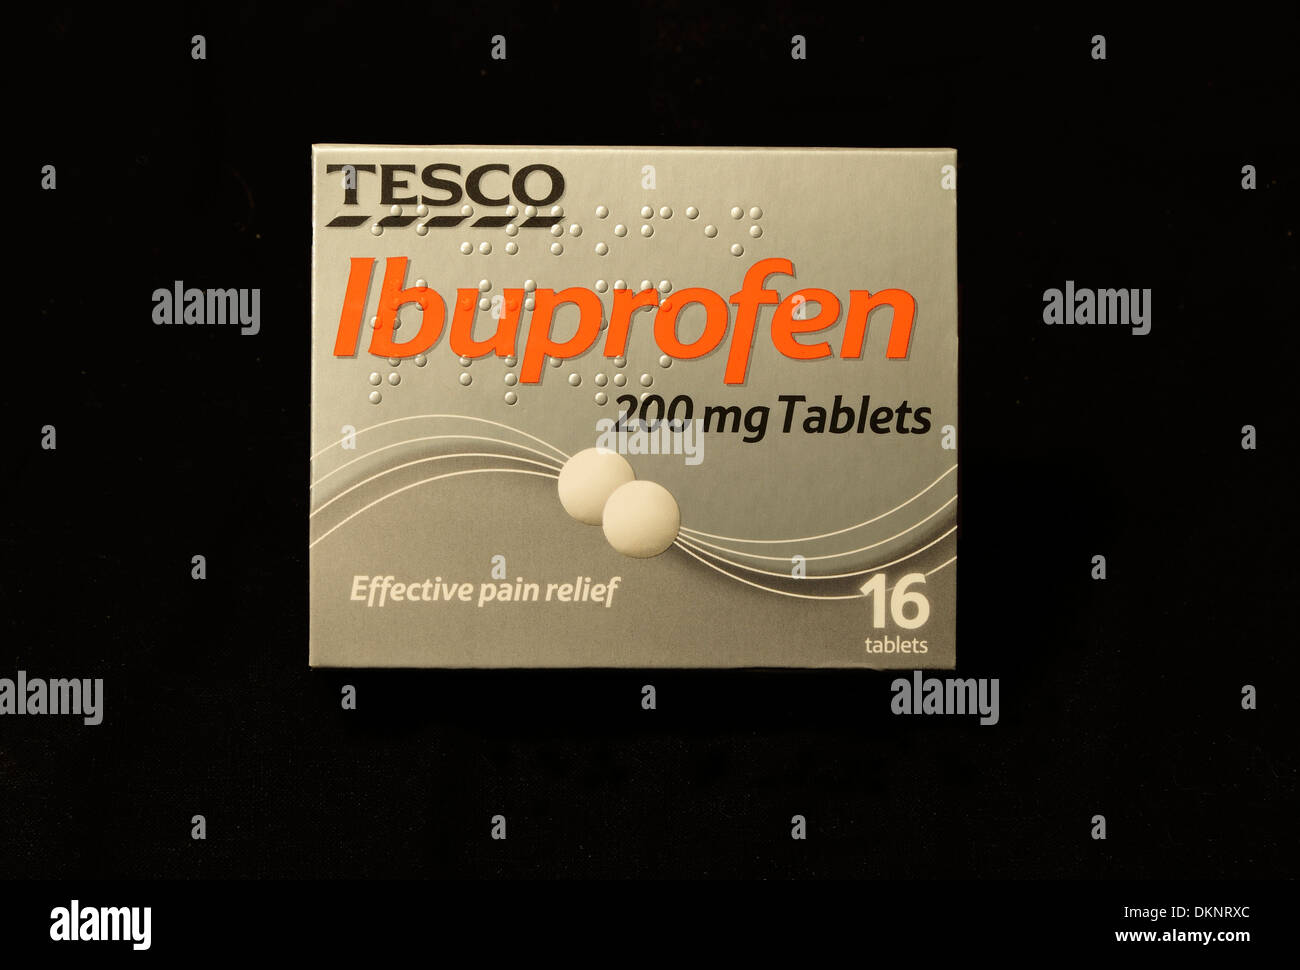 L'Ibuprofen 200mg comprimés Tesco, neurofen, pack, paquet, boîtes, paquets, comprimé, médecine, médicaments, pain killer killers UK mg Photo Stock